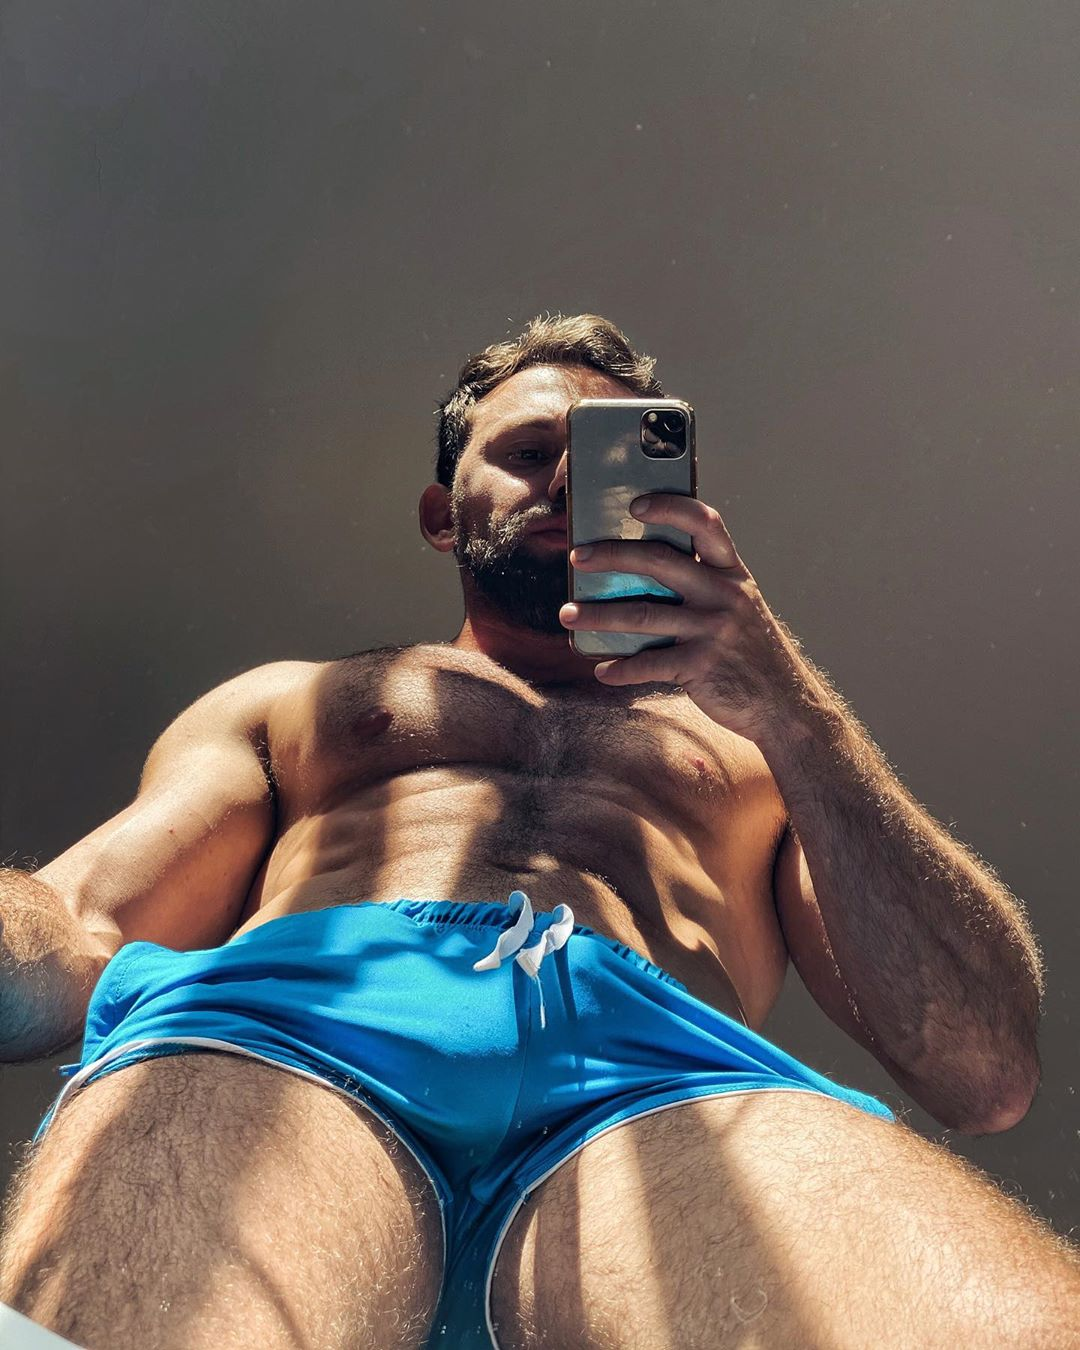 Guys with iPhones